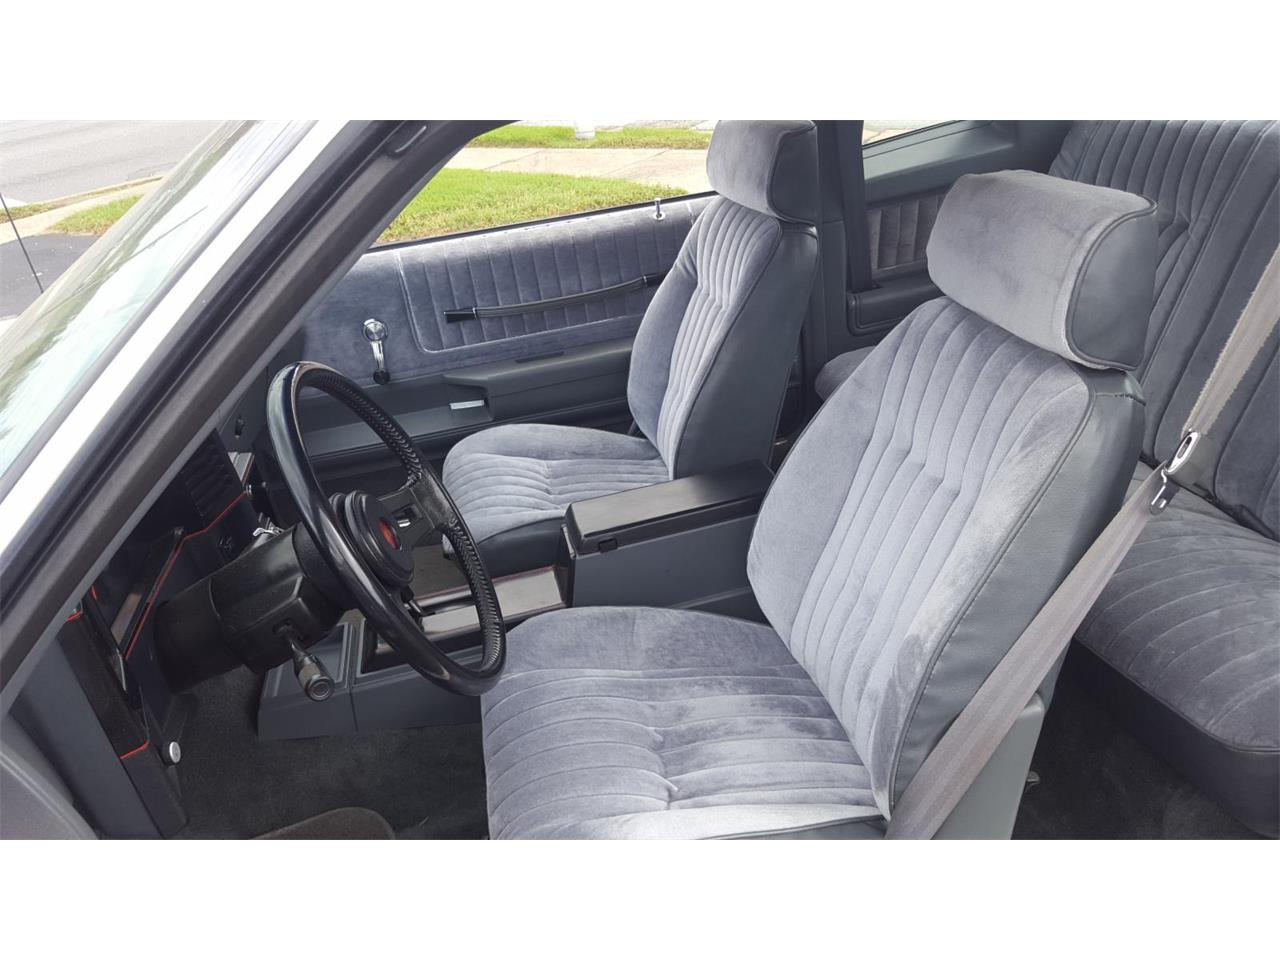 Large Picture of '88 Chevrolet Monte Carlo SS - $9,450.00 - JJZ7